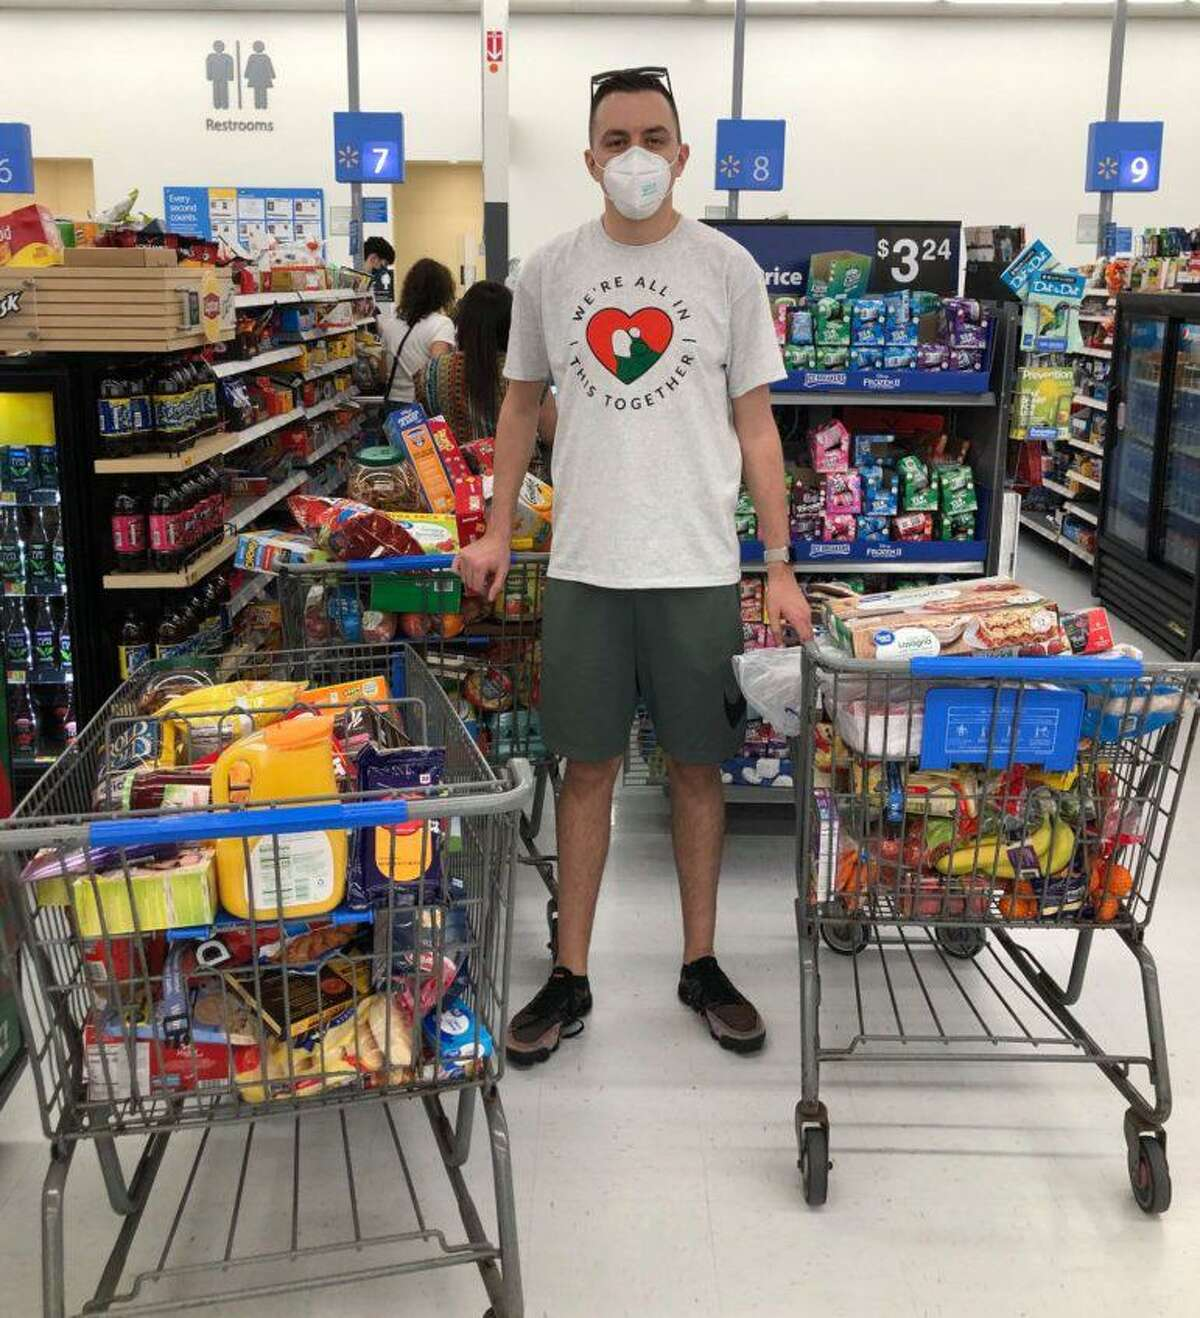 Mansfield Middle School teacher Louis Goffinet makes one of his dozens of grocery runs during the height of the pandemic.